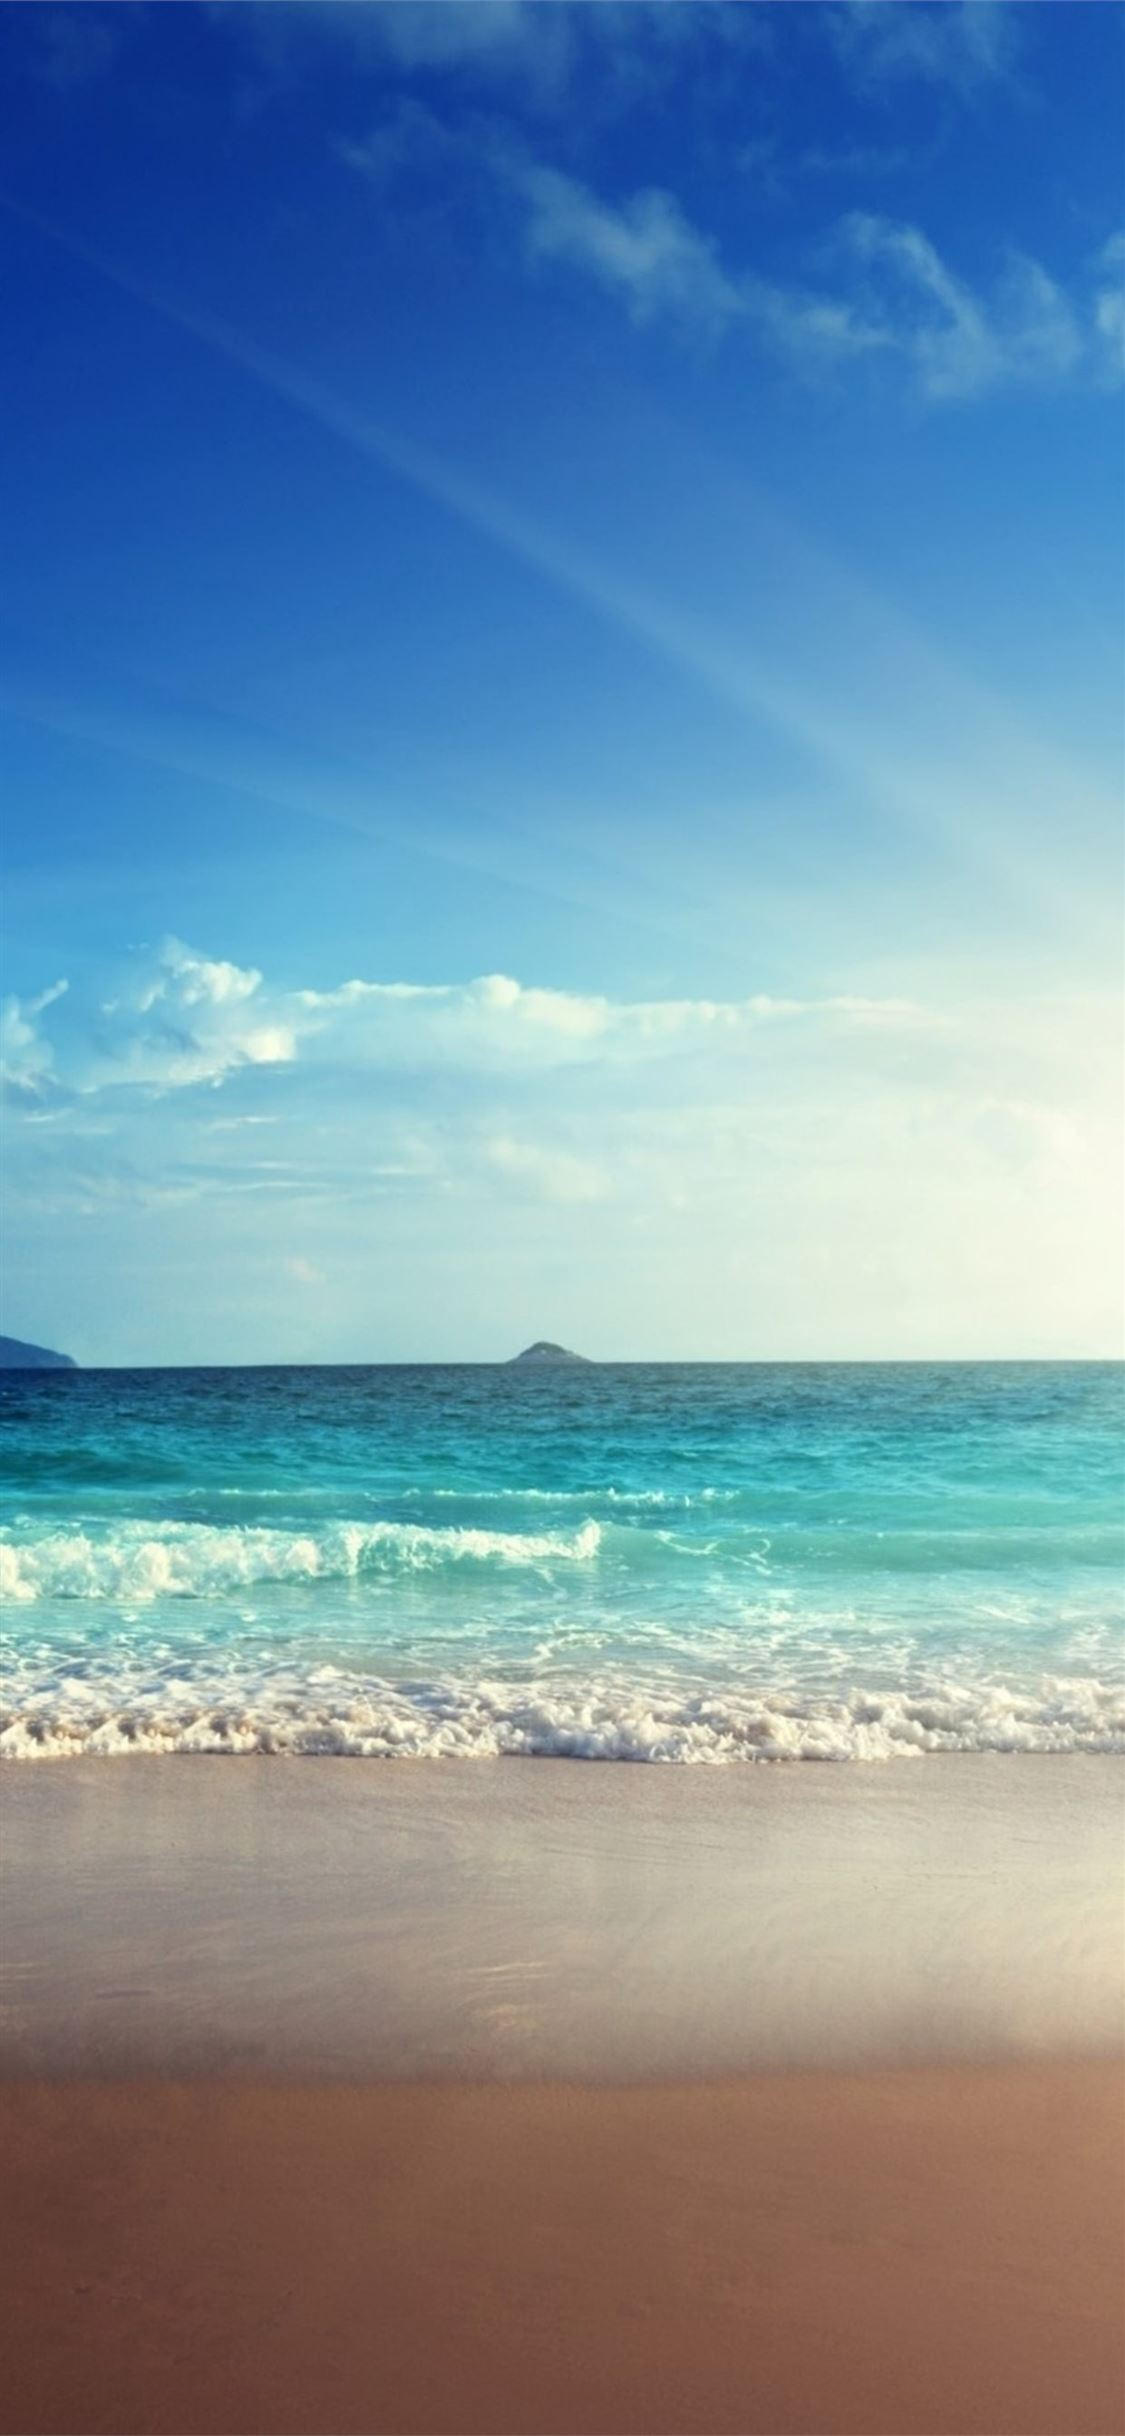 Sea View Clear Sky Iphone X Wallpapers Free Download